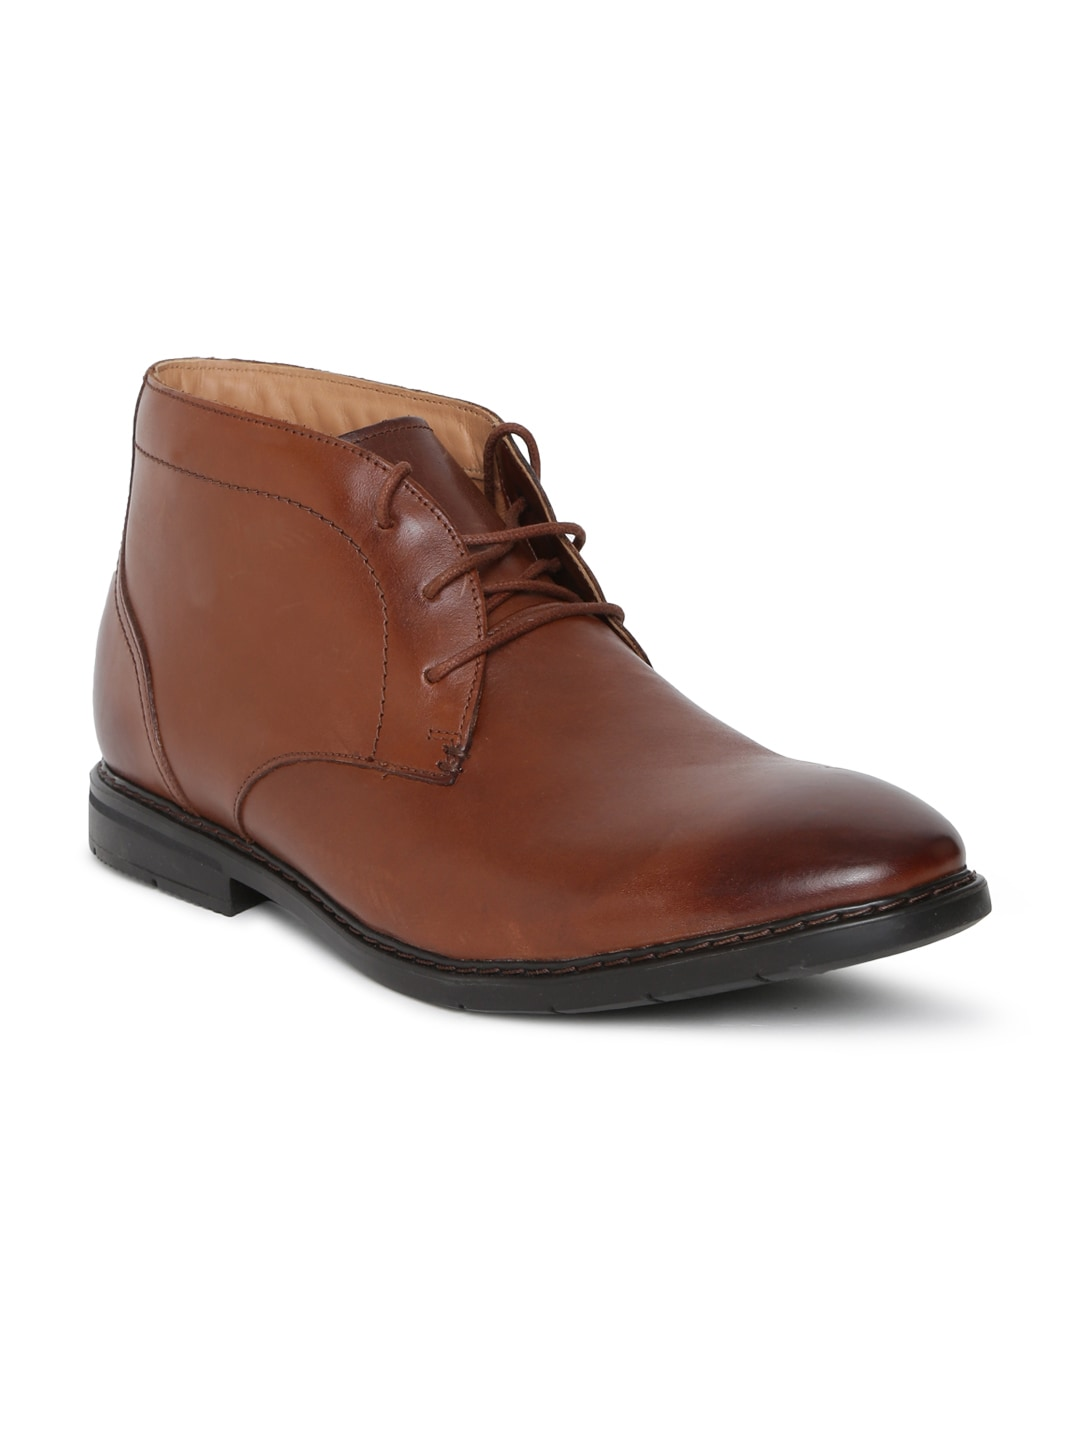 6e23350cafd8 CLARKS - Exclusive Clarks Shoes Online Store in India - Myntra